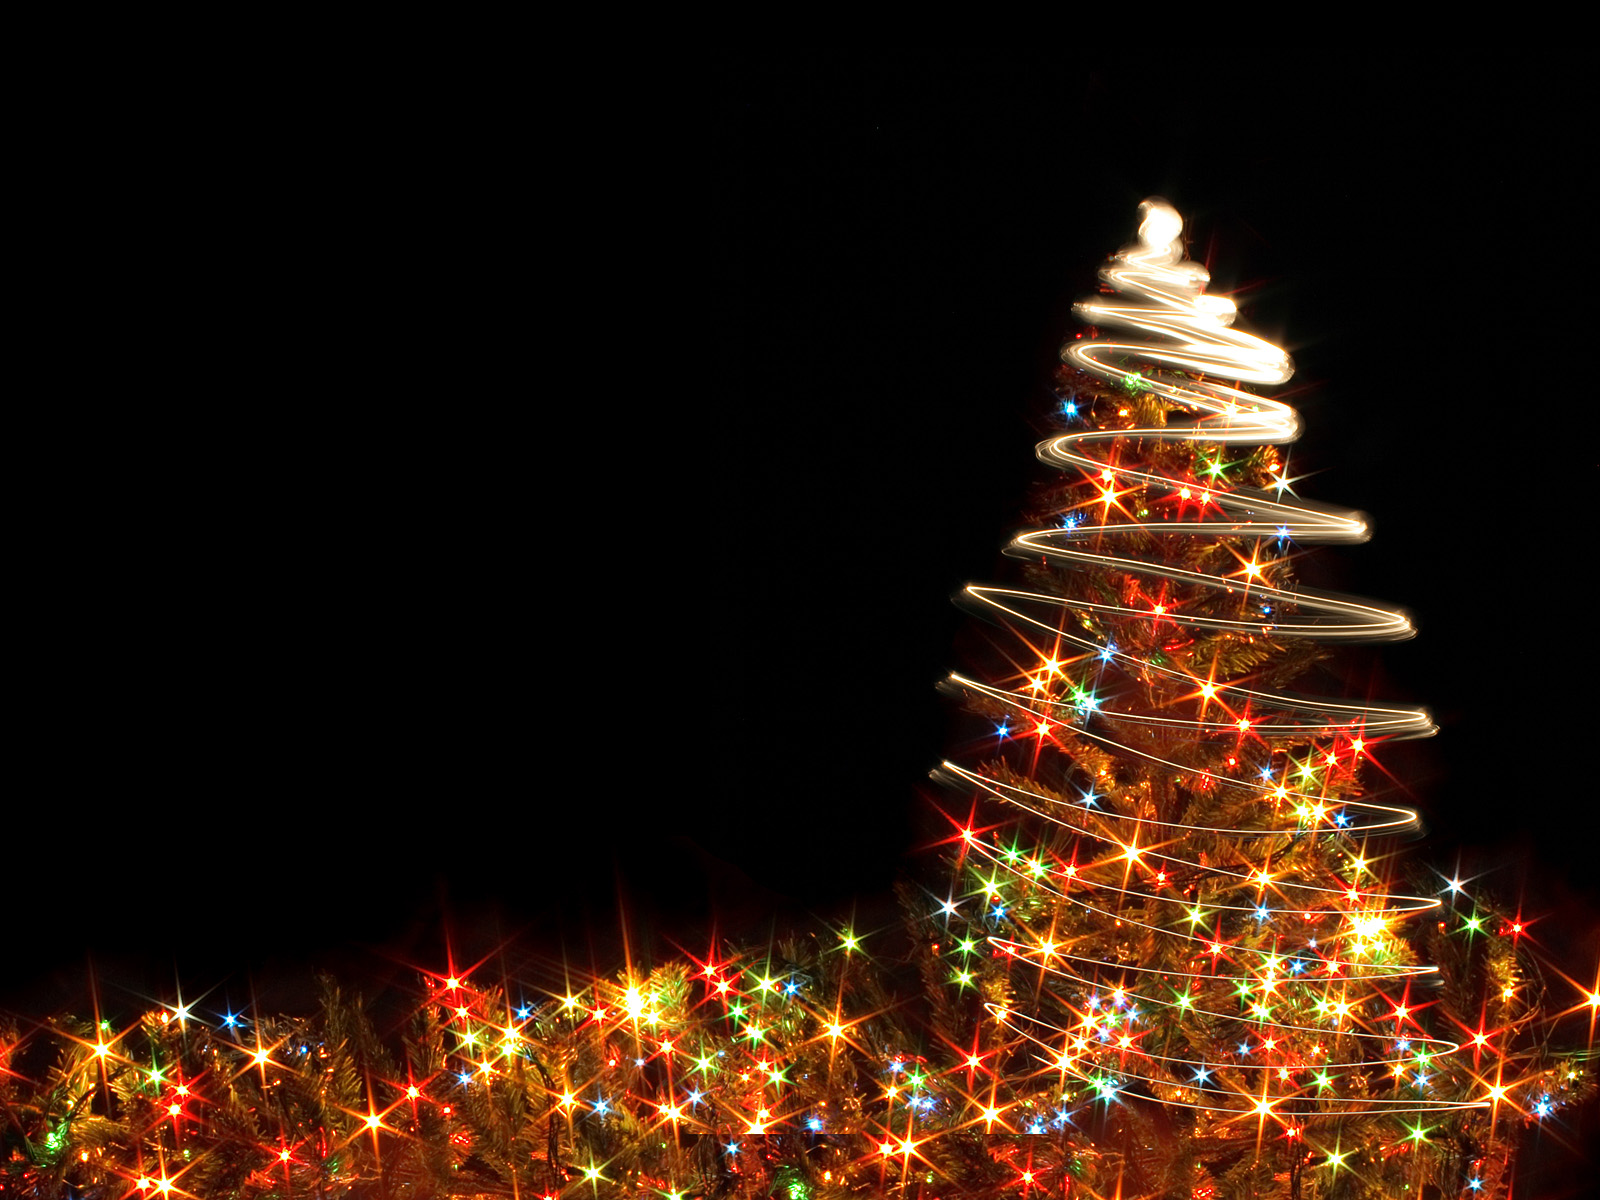 http://3.bp.blogspot.com/-CN_YmRKLmos/TsdOqndRkzI/AAAAAAAABos/b1FWR32qkY0/s1600/Christmas-lights-desktop-Wallpapers-HD-photo-images-15.jpg